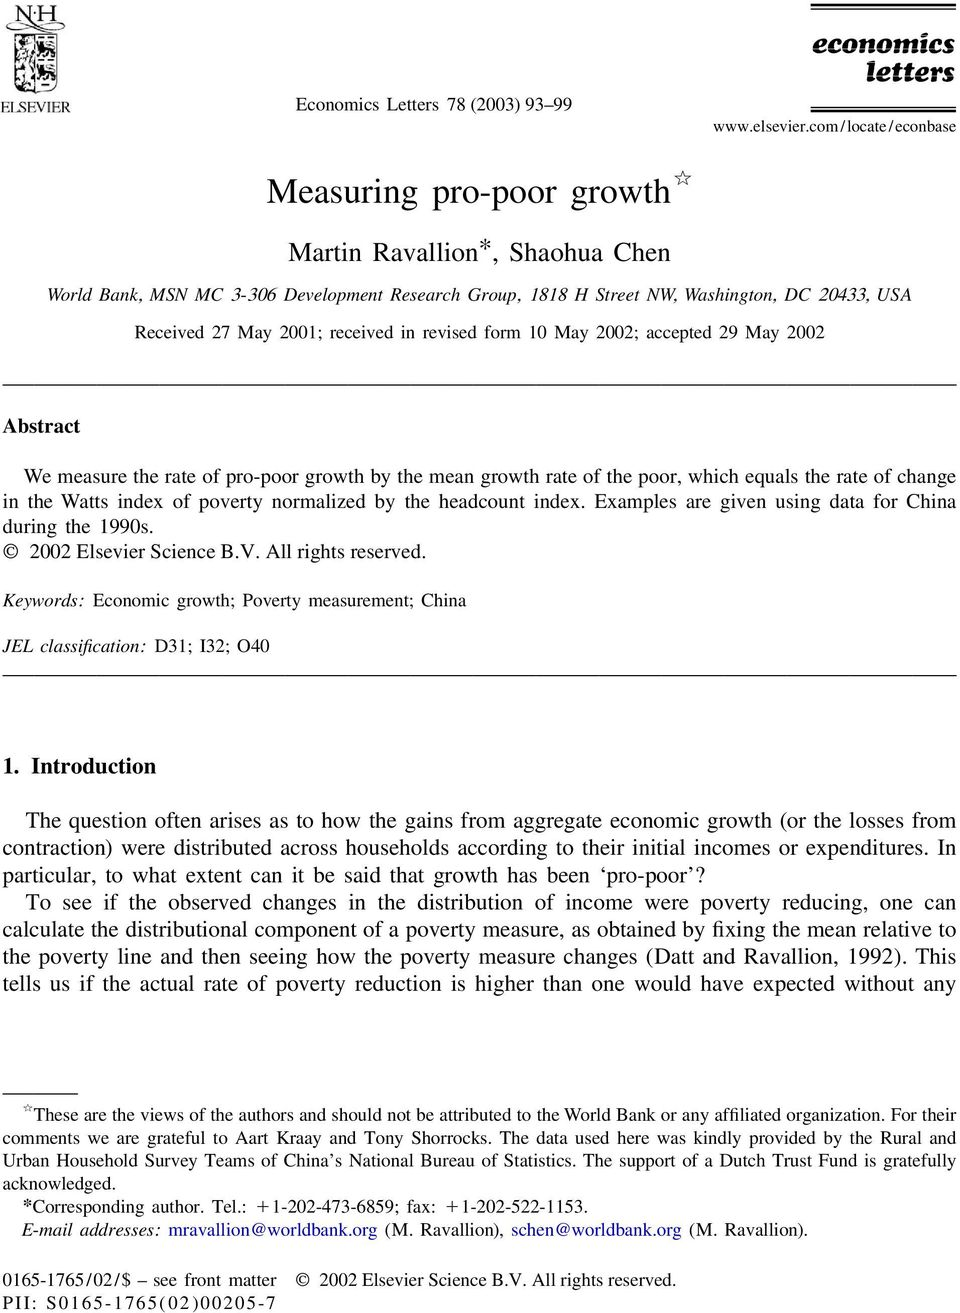 2001; received in revised form 10 May 2002; accepted 29 May 2002 Abstract We measure the rate of pro-poor growth by the mean growth rate of the poor, which equals the rate of change in the Watts